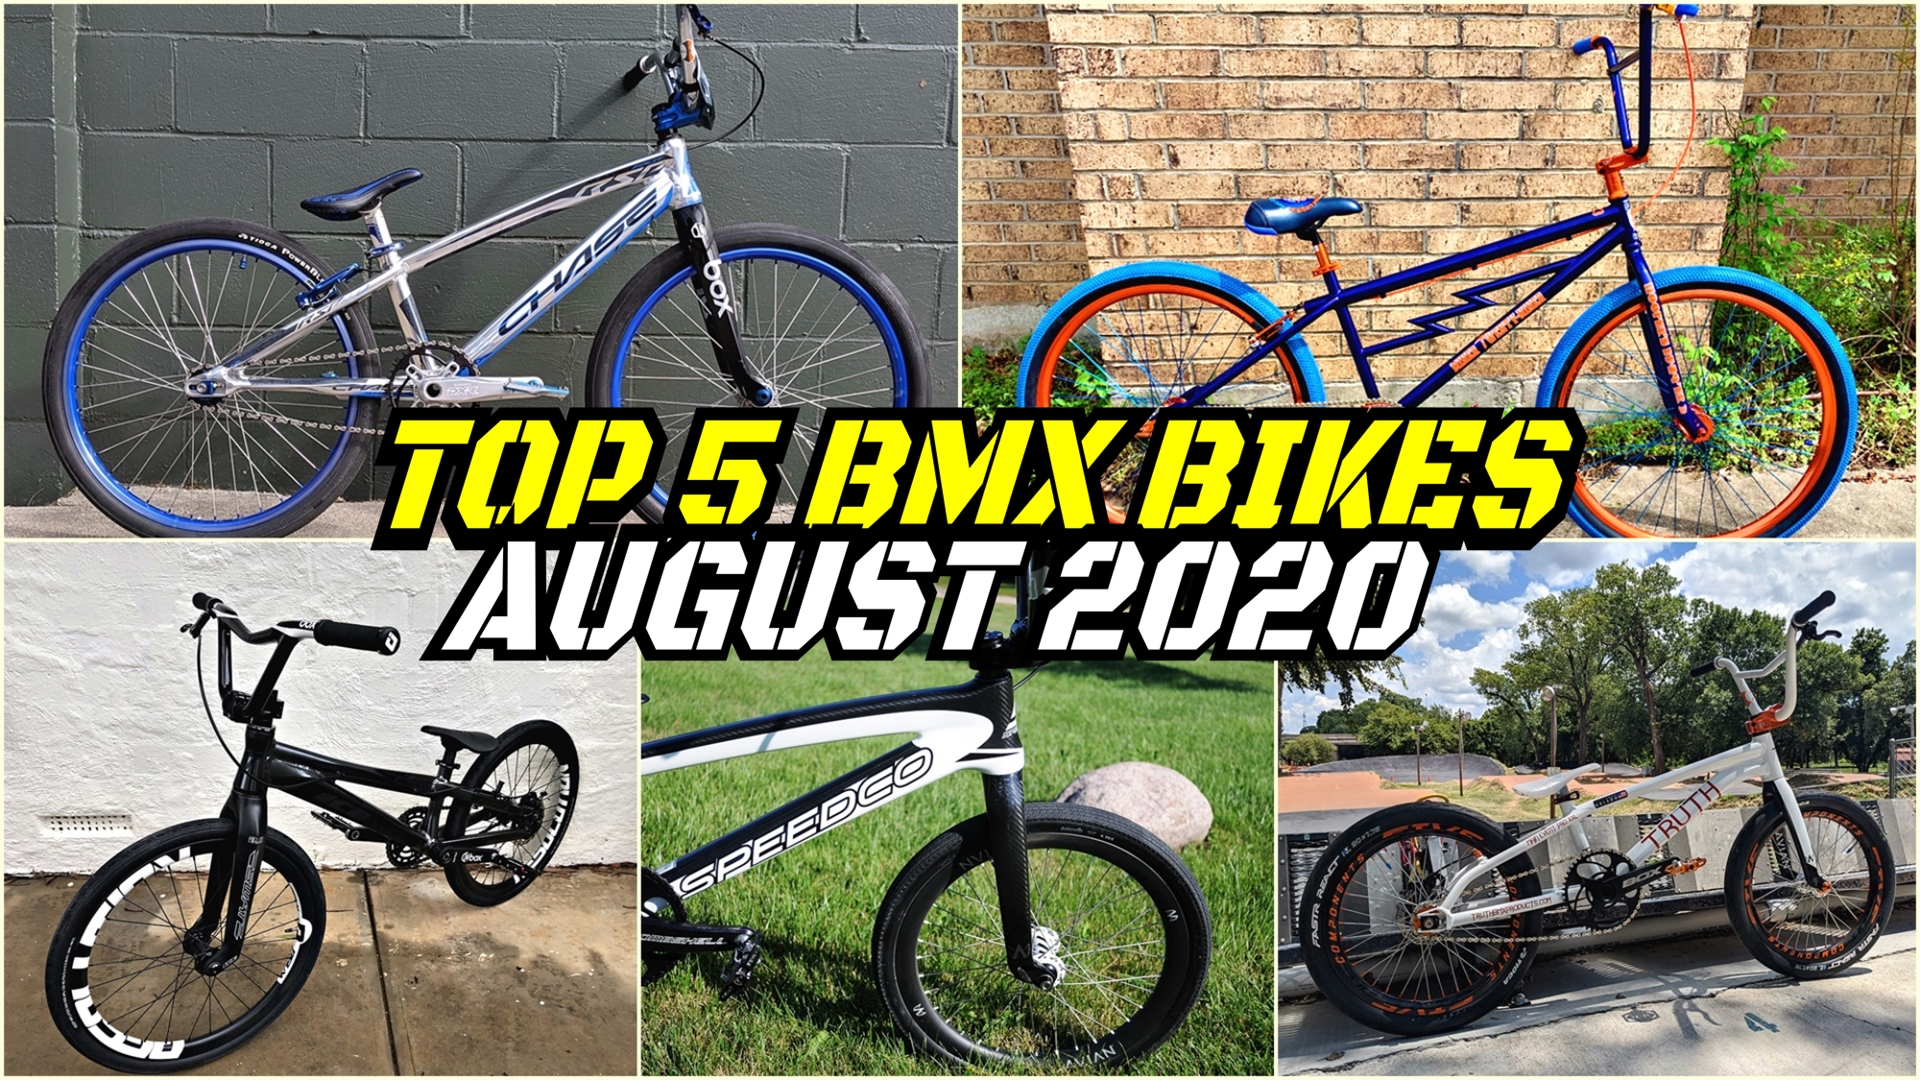 bike of the month results august